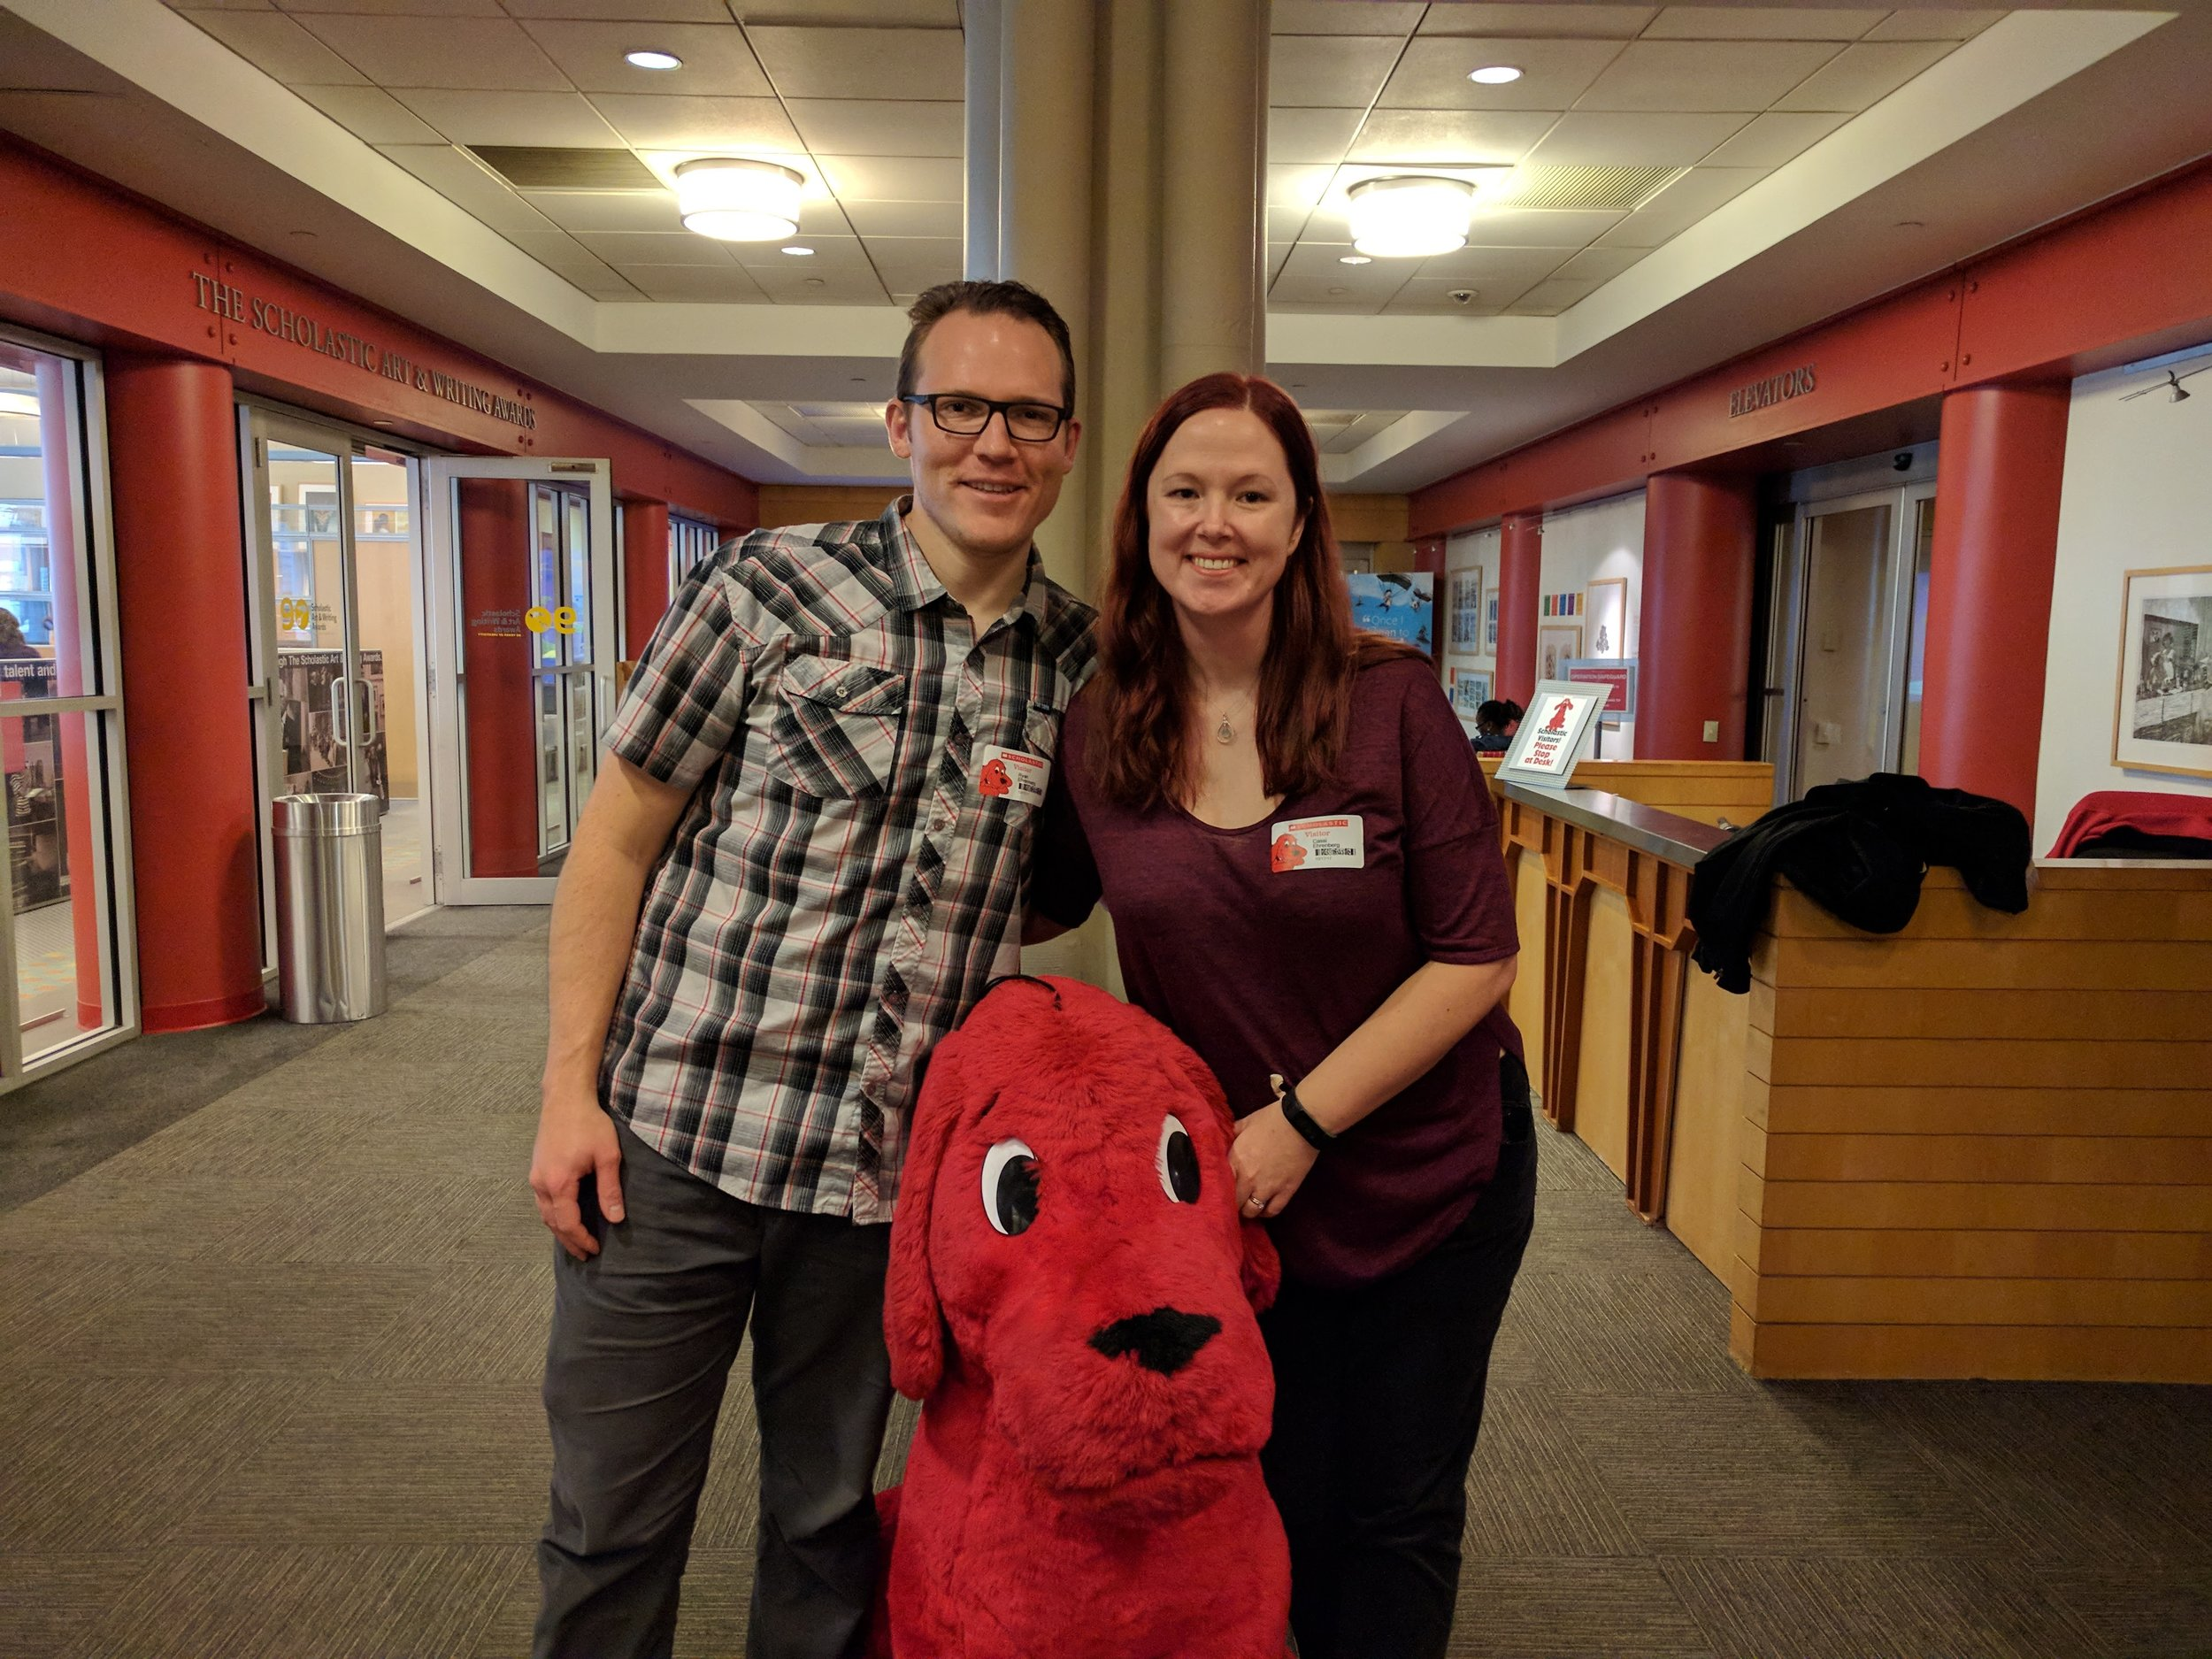 Clifford is not part of our advance team but he was nice enough to take a photo anyway.